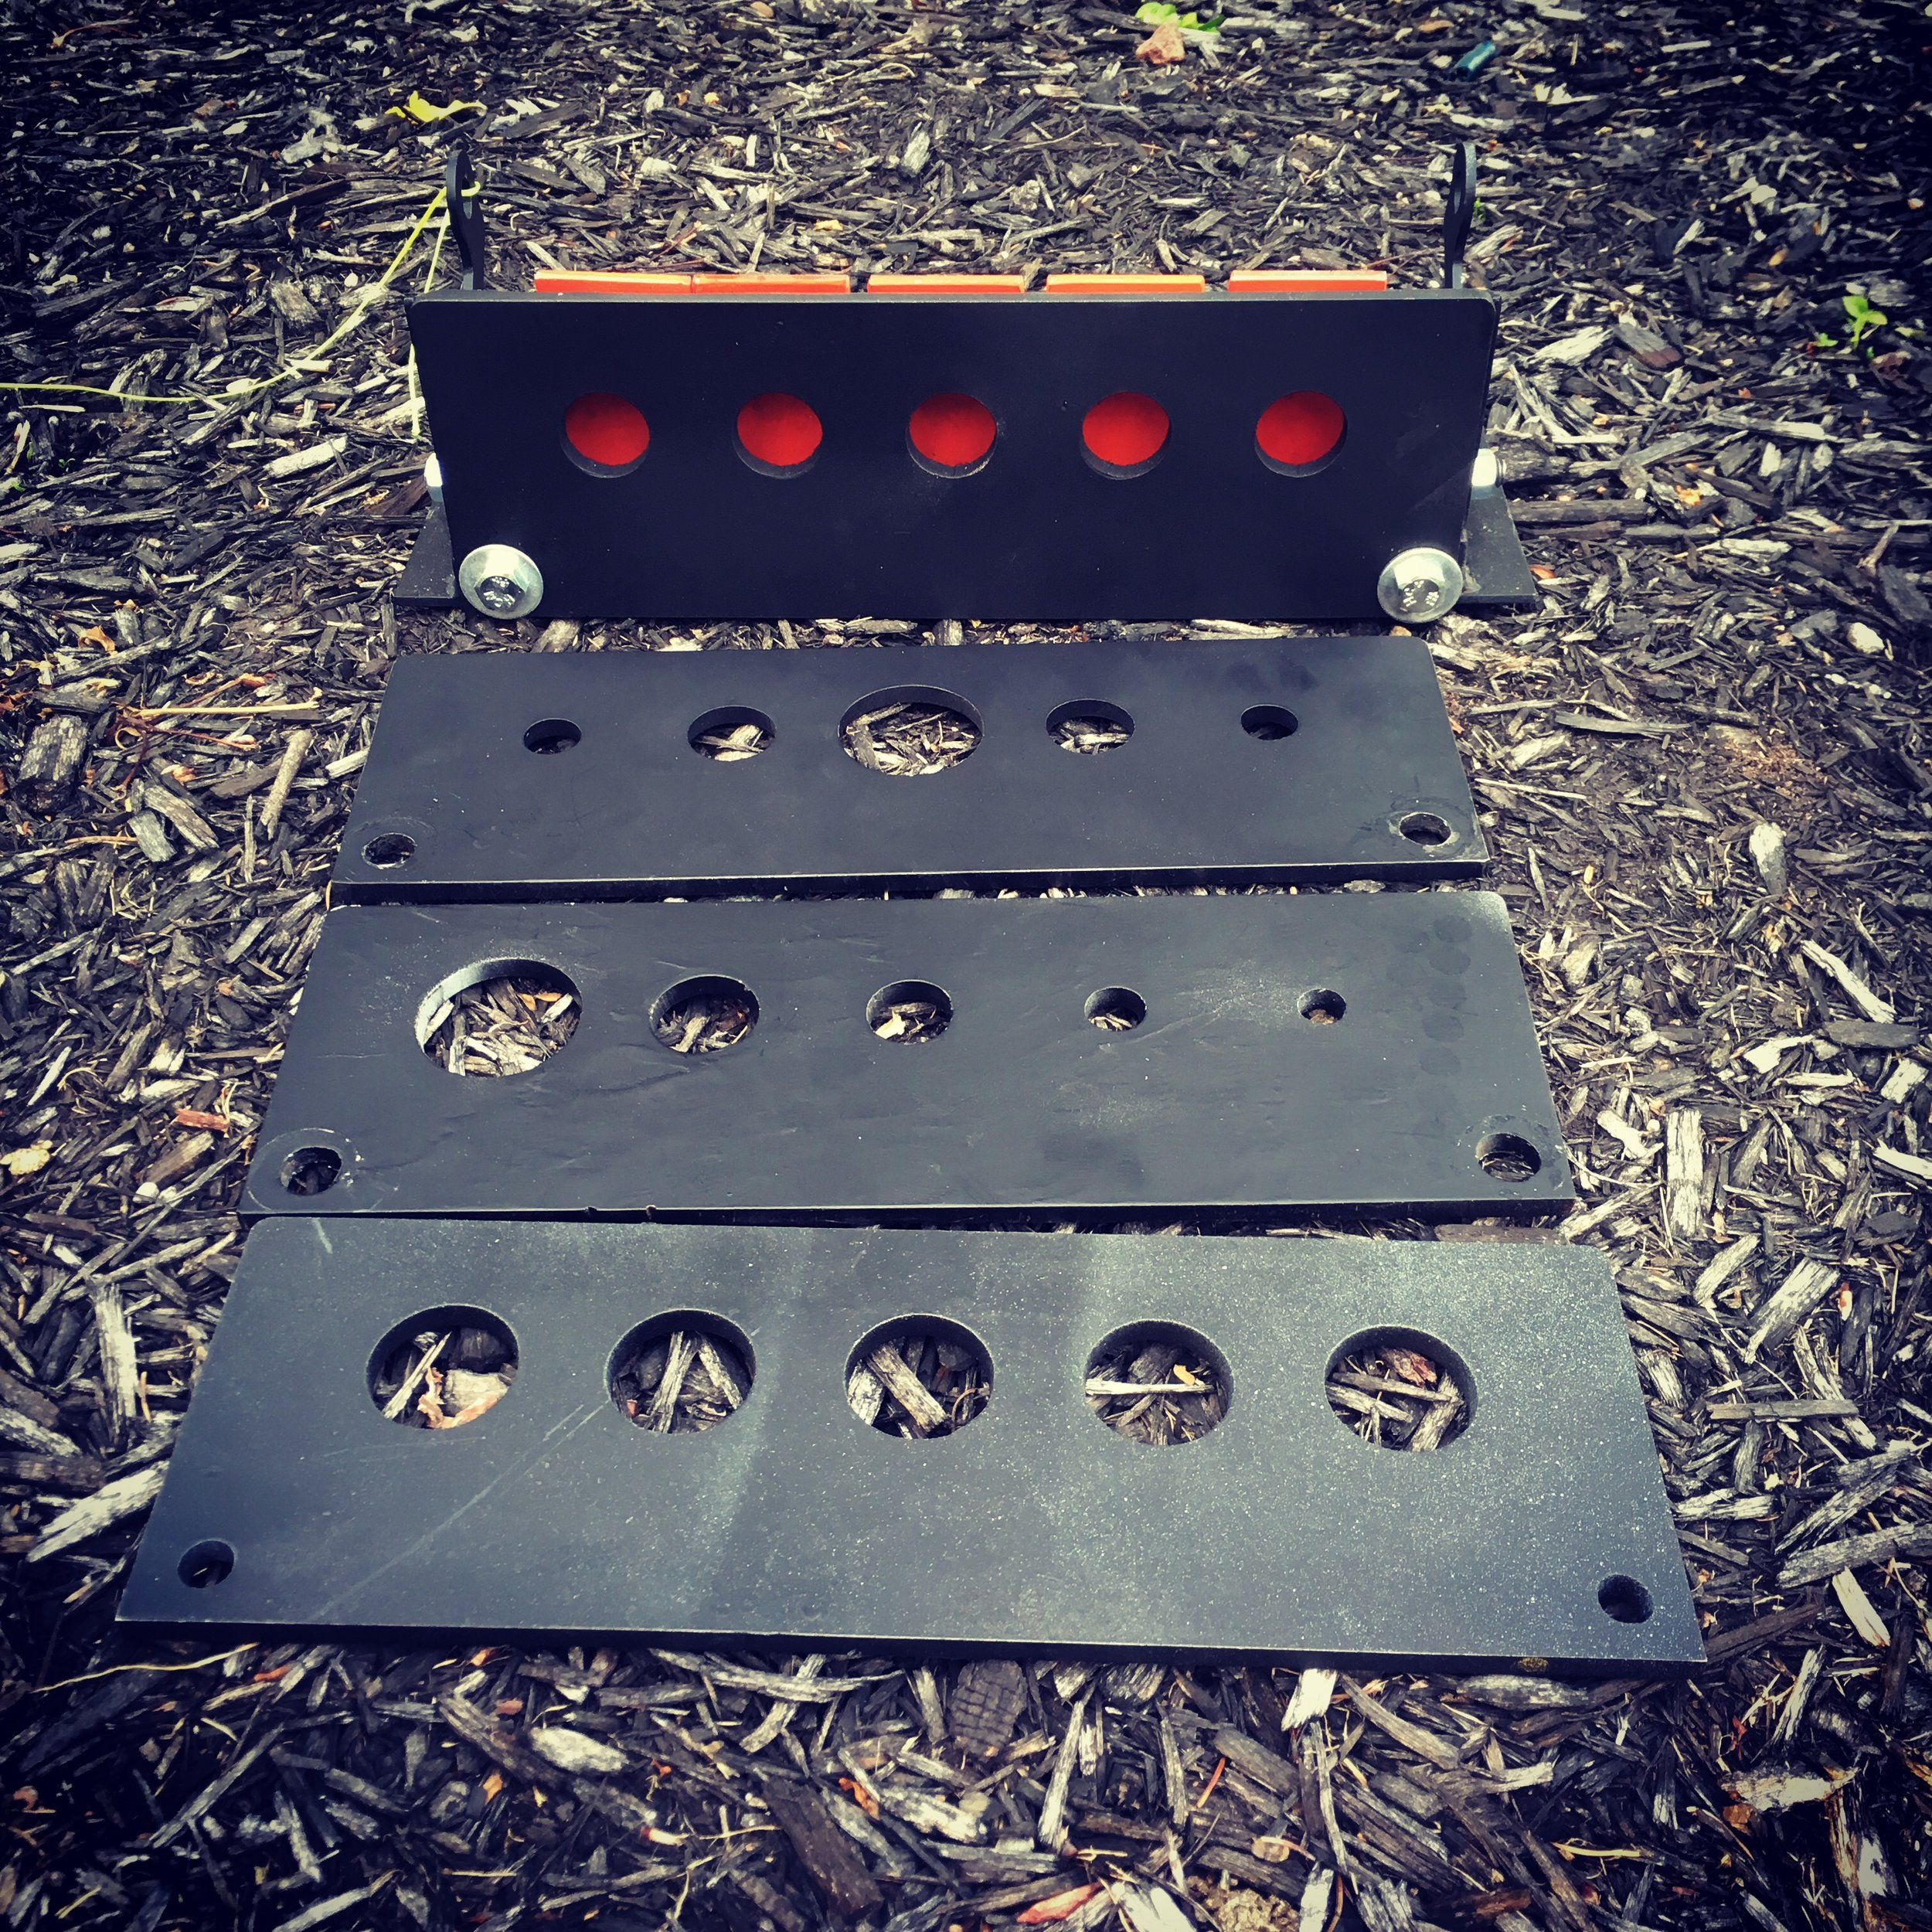 The Core Product, The Modular, Portable, 3-dimensional, Rx Target . Representing American and World field target and rapid fire shooting. Currently 70 foot-pound rated target at 30 yards.  Shown here with all four configurations, demonstrating the interchangeability of the face plates.